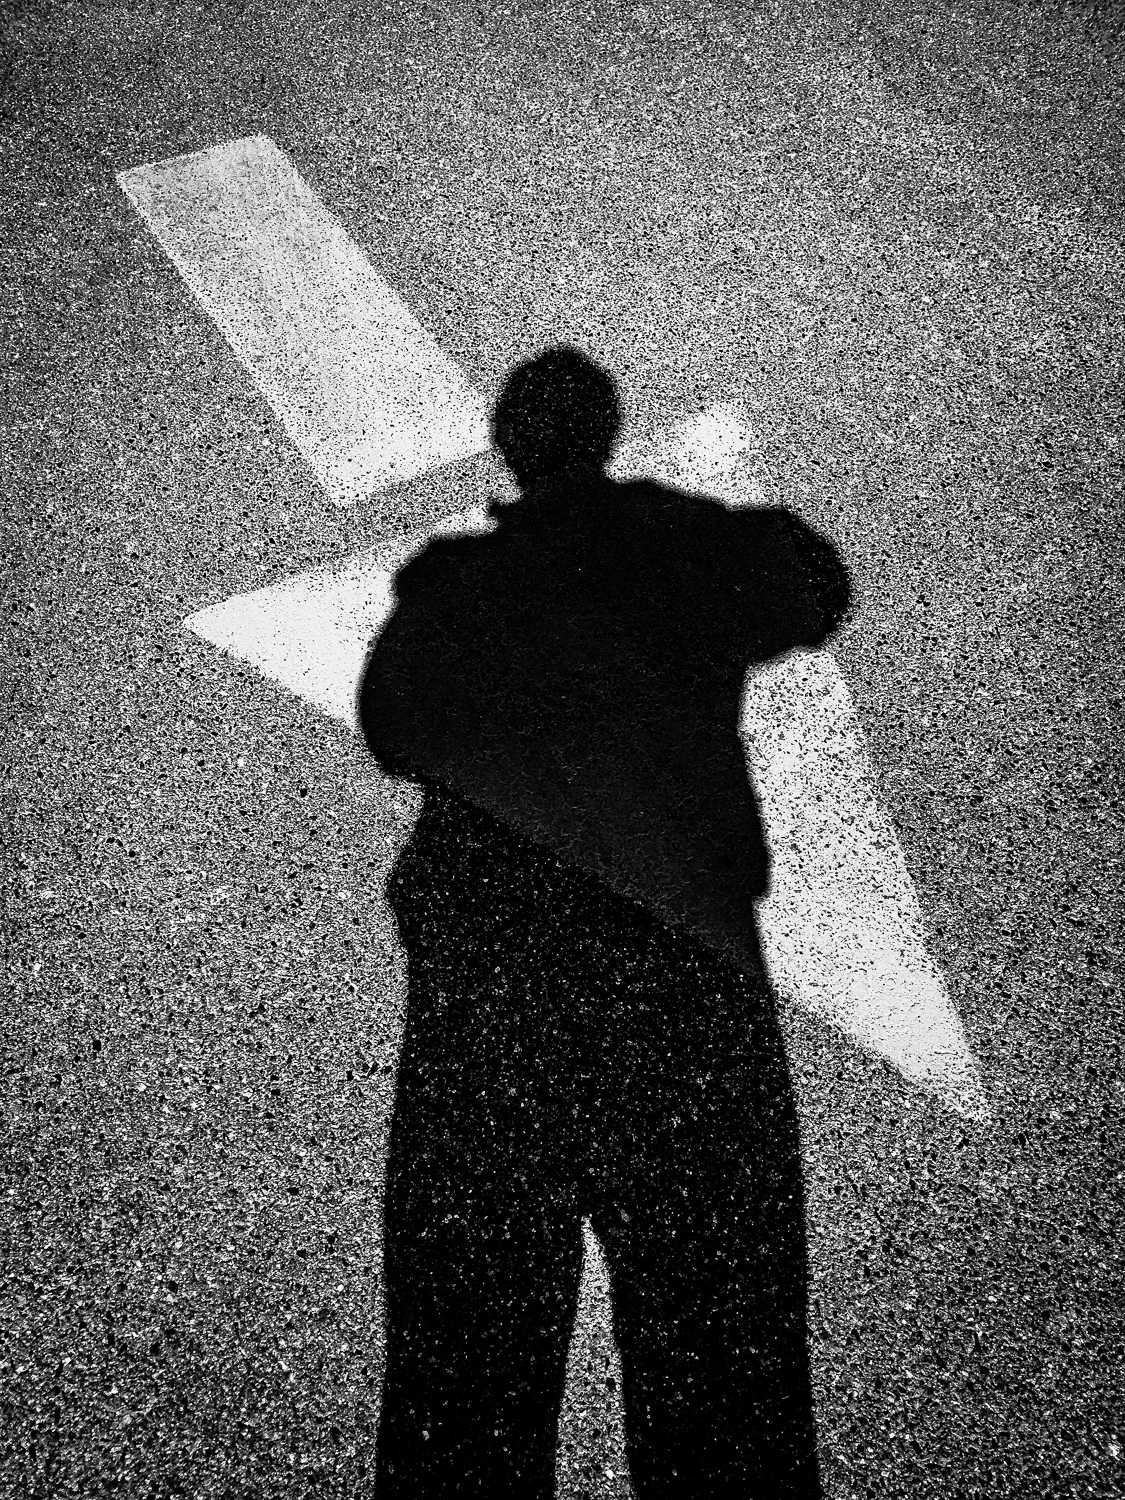 My and my shadow, going the wrong way...